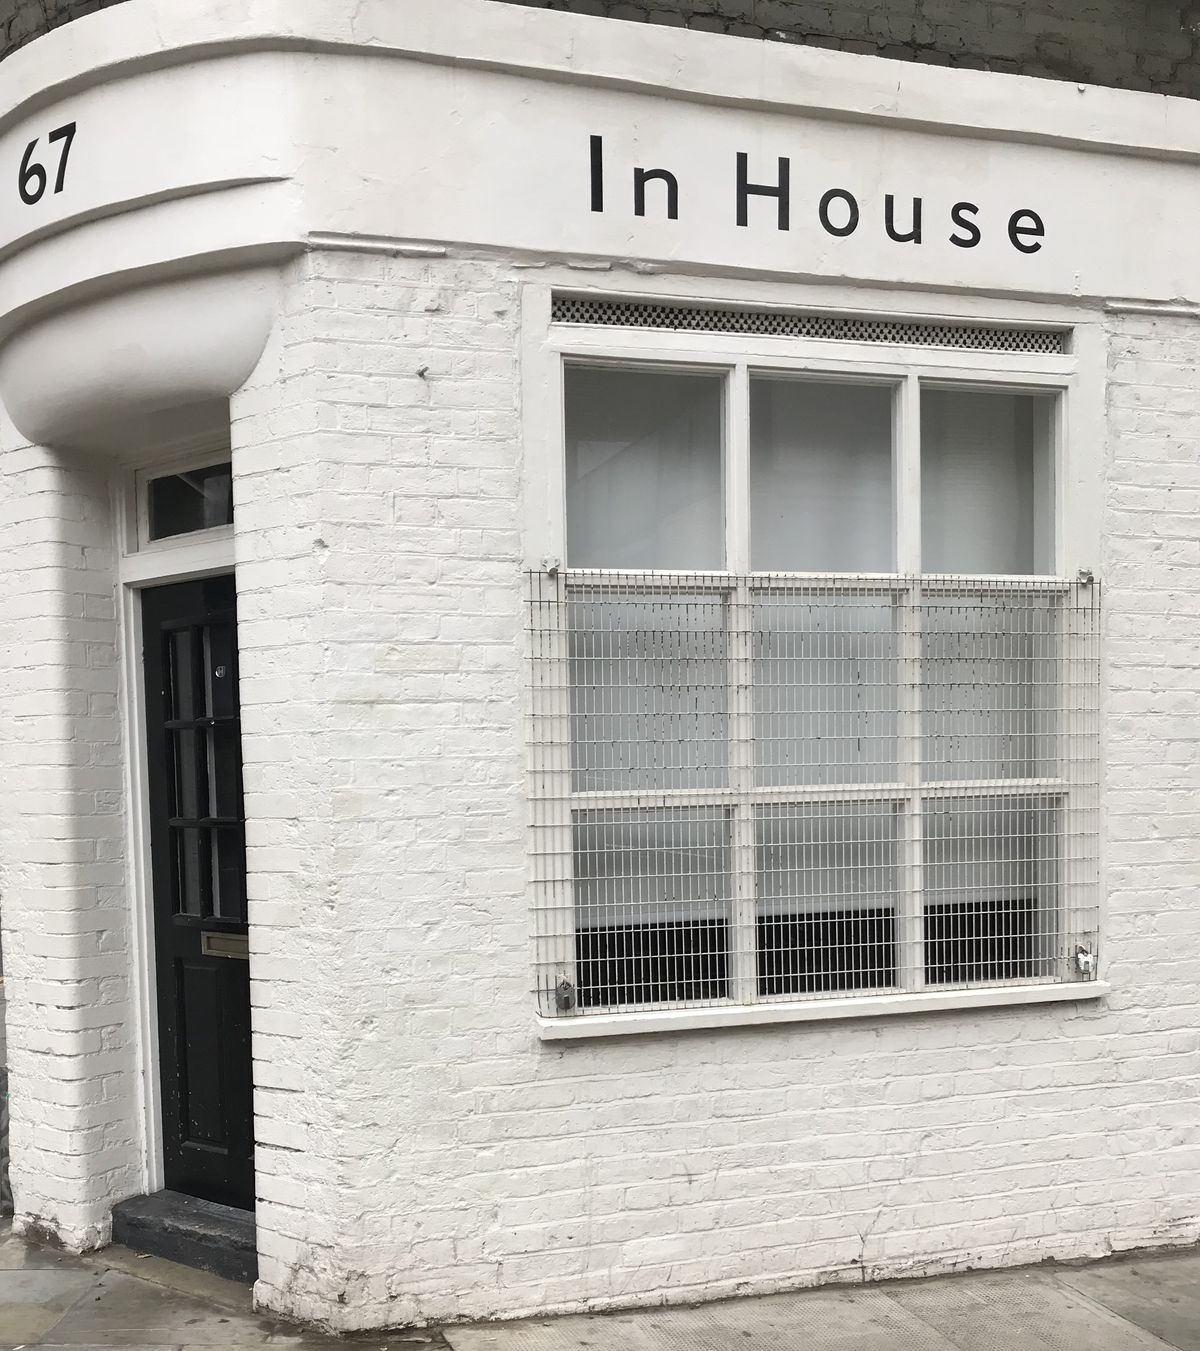 67 Redchurch Street, the site of Orford's Pump Street Bakery's London pop-up